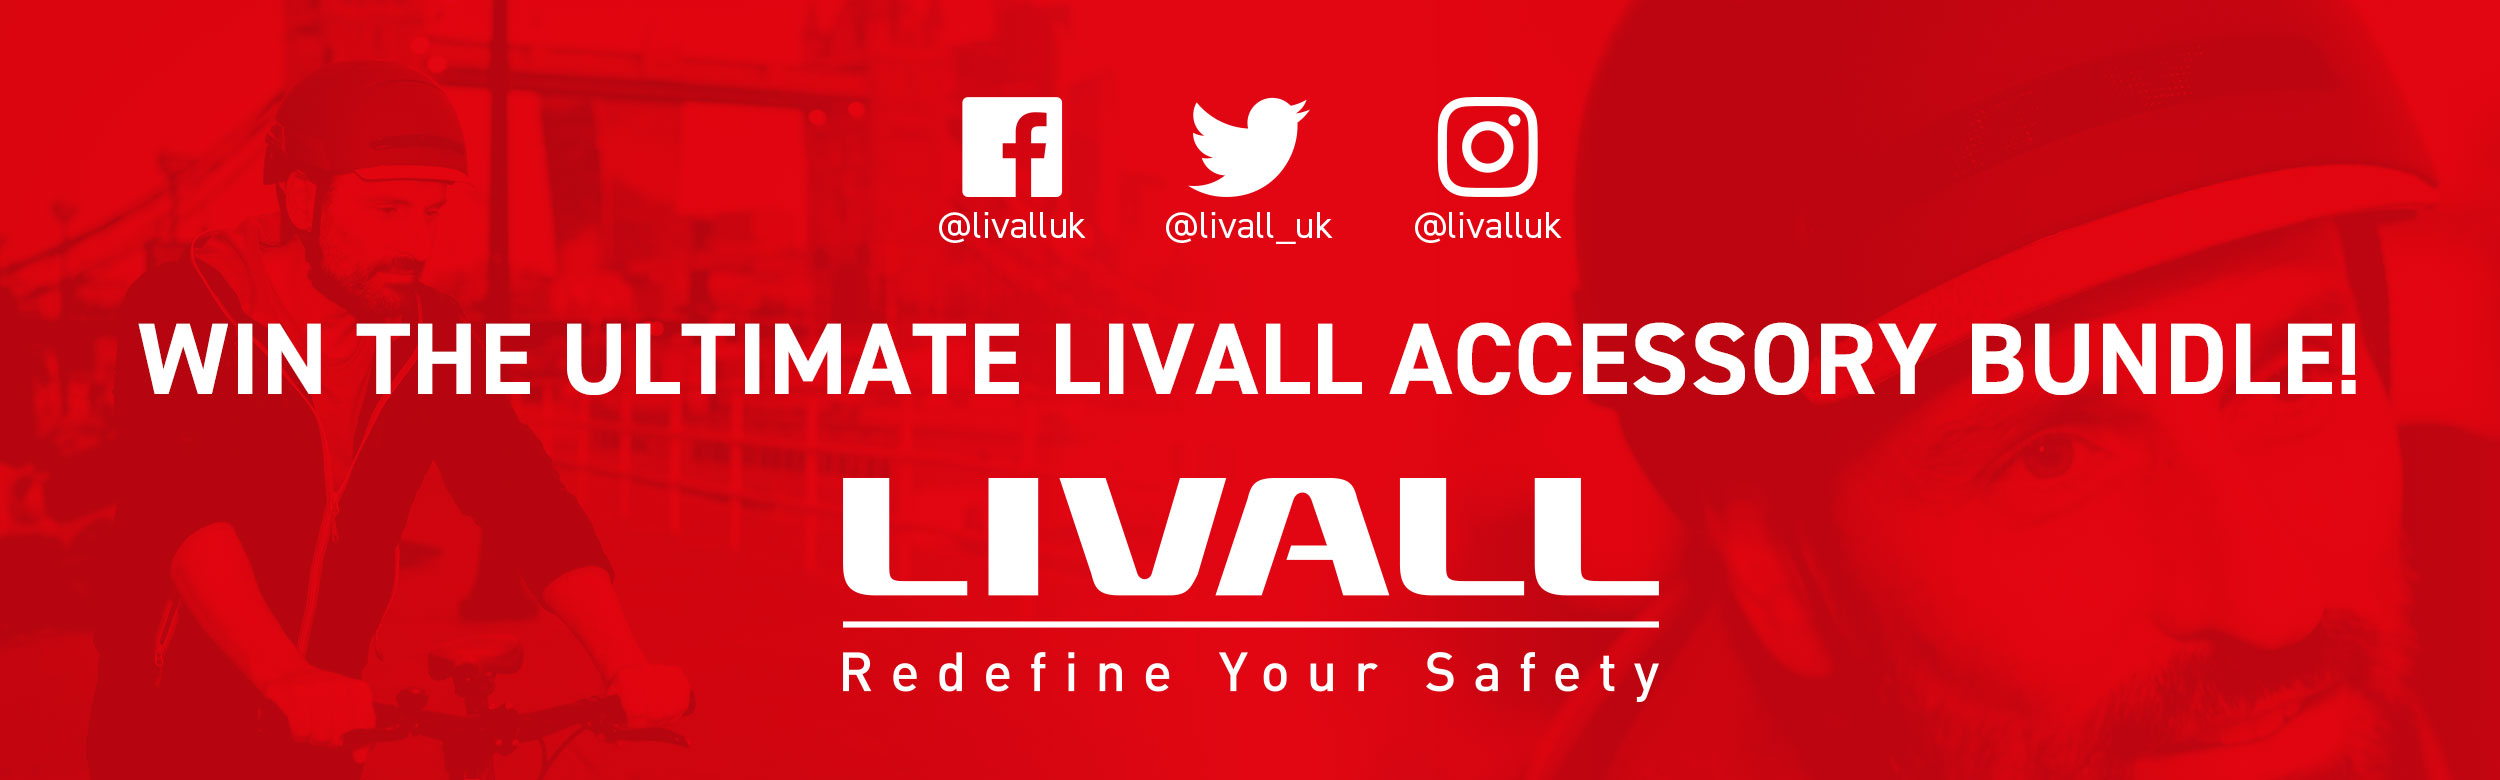 - LIVALL Comp Banner 1 - Home